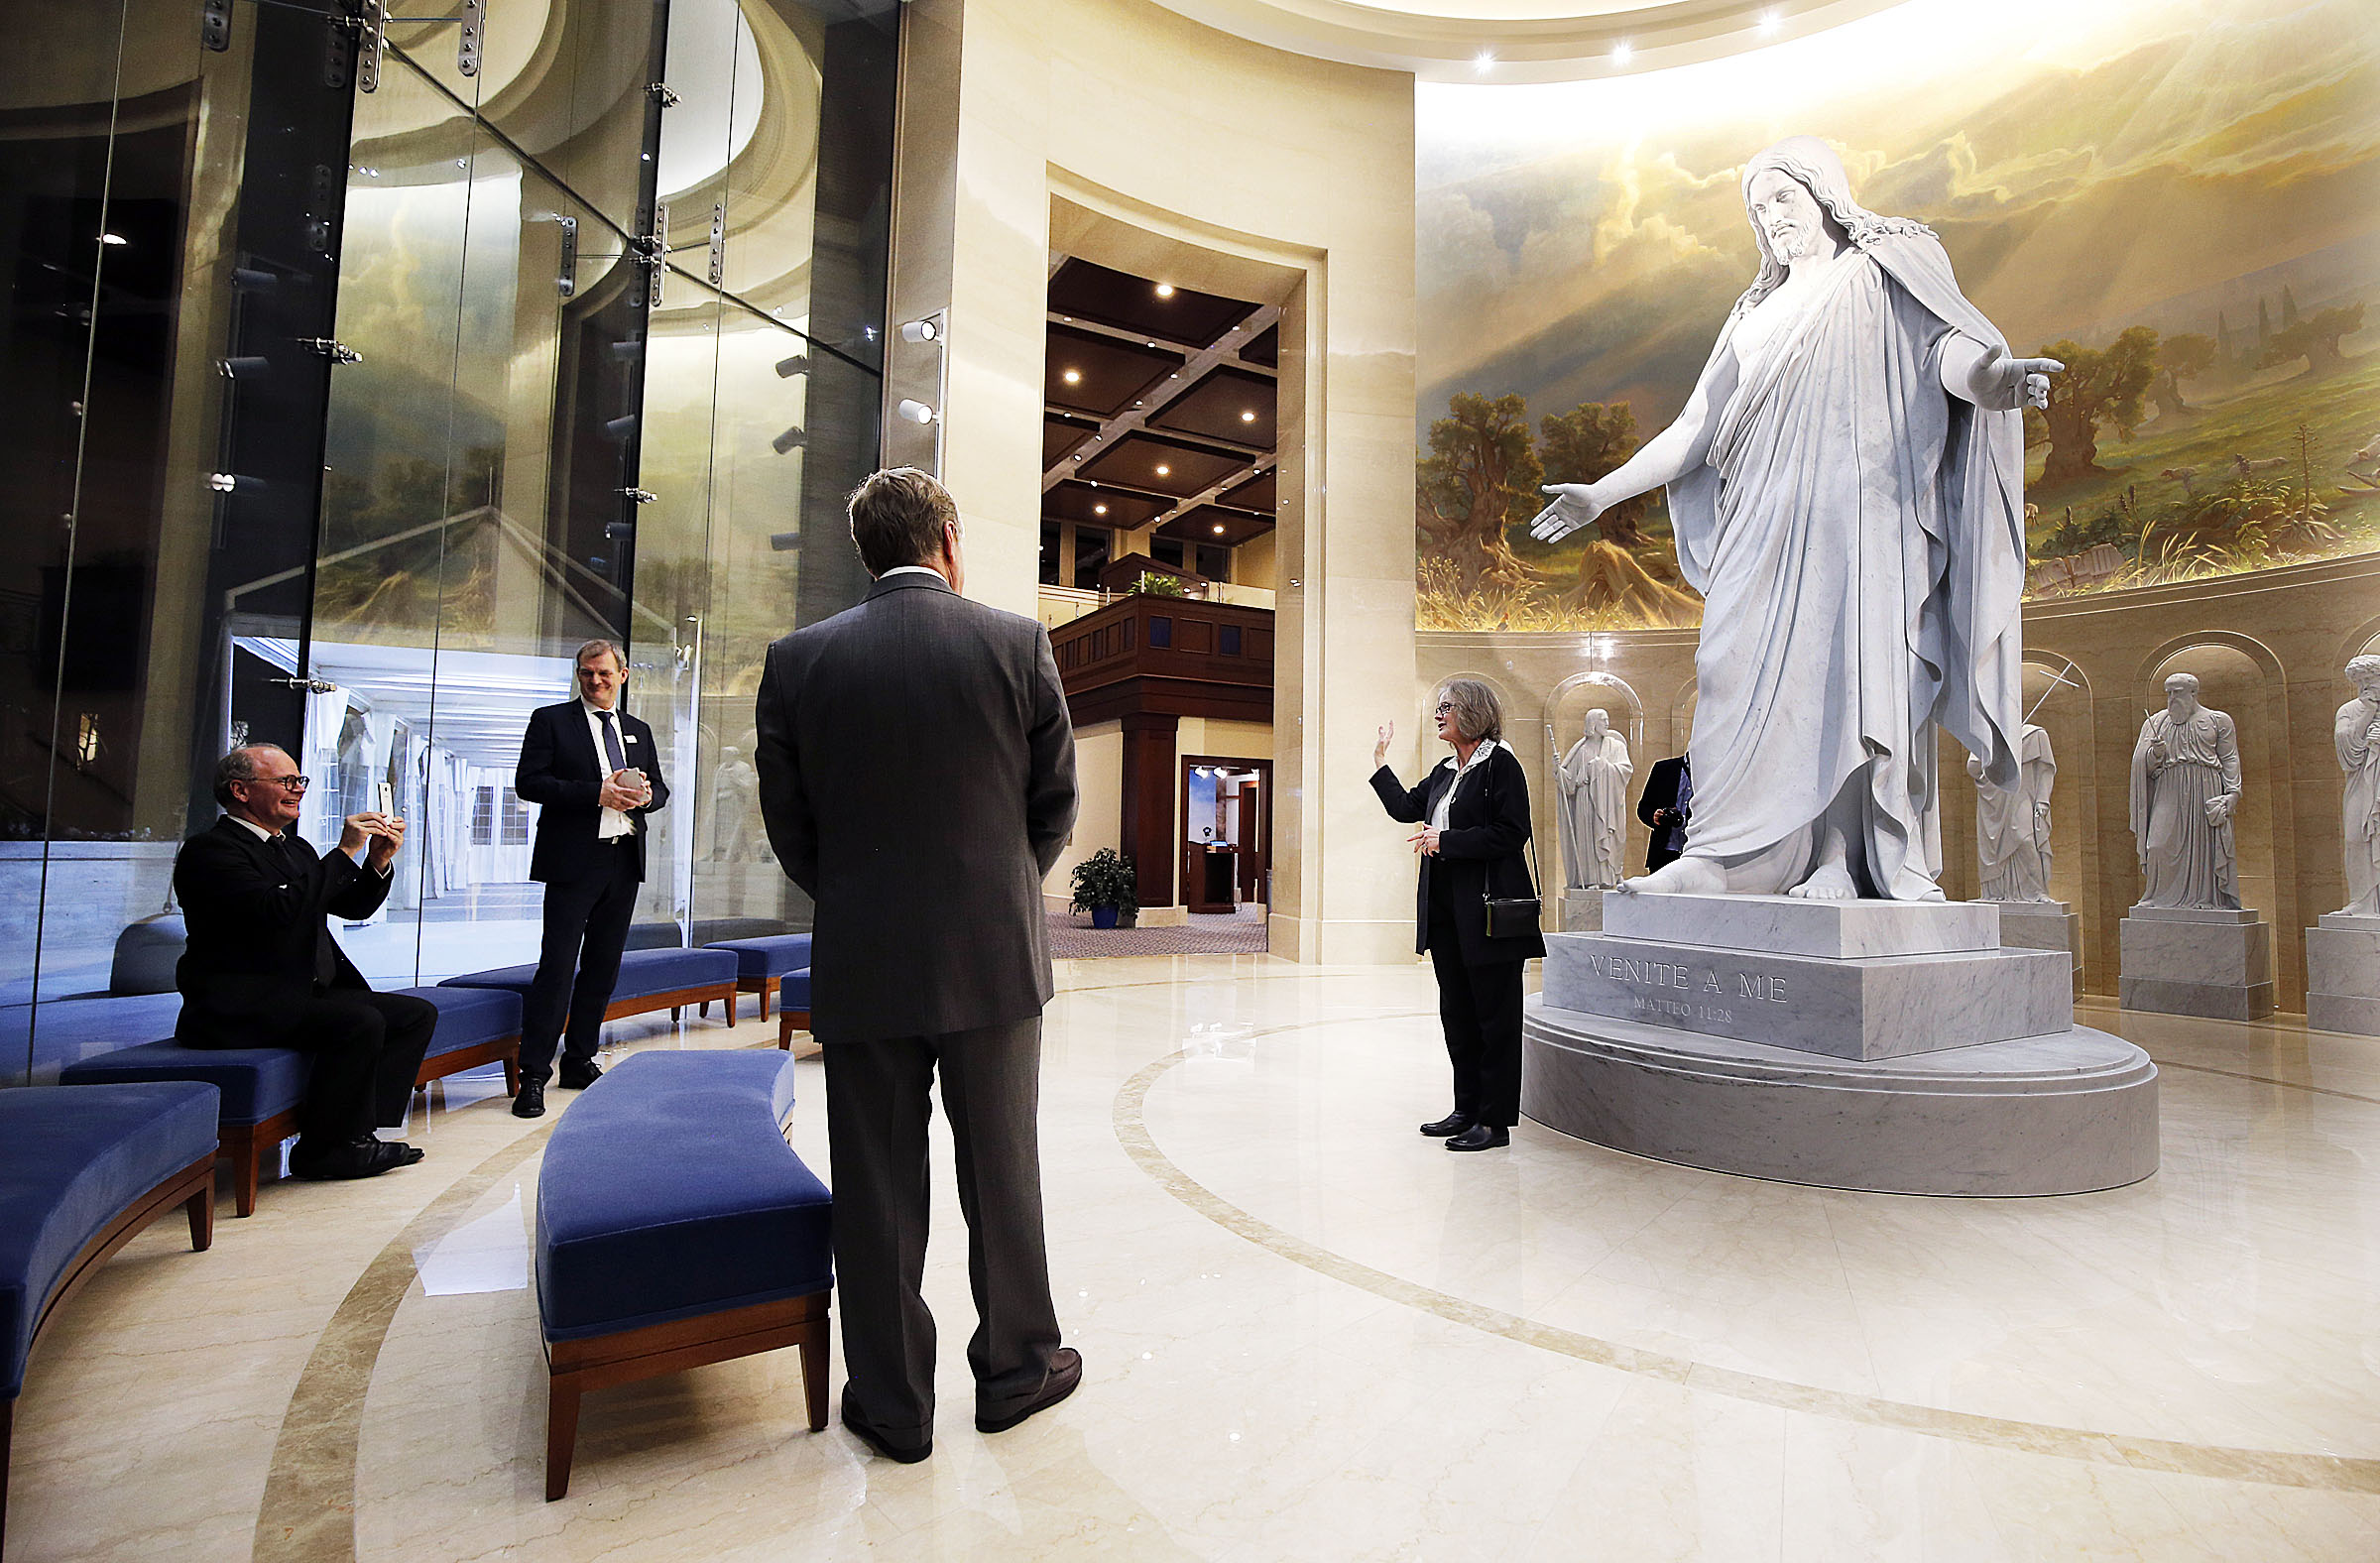 Bent Sloth, facility director at the Church of Our Lady in Copenhagen, Denmark, takes a photo of Susanne Torgard, curator at the church, which is home to Thorvaldsen's Christus statue, at the base of a digital, 3-D replica done in marble at the Rome Italy Temple on Wednesday, Jan. 16, 2019. In the background is Steffen Ringgaard Andresen, the church's vicar priest, and in the foreground is Niels Valentiner, architect of the Rome Italy Temple.